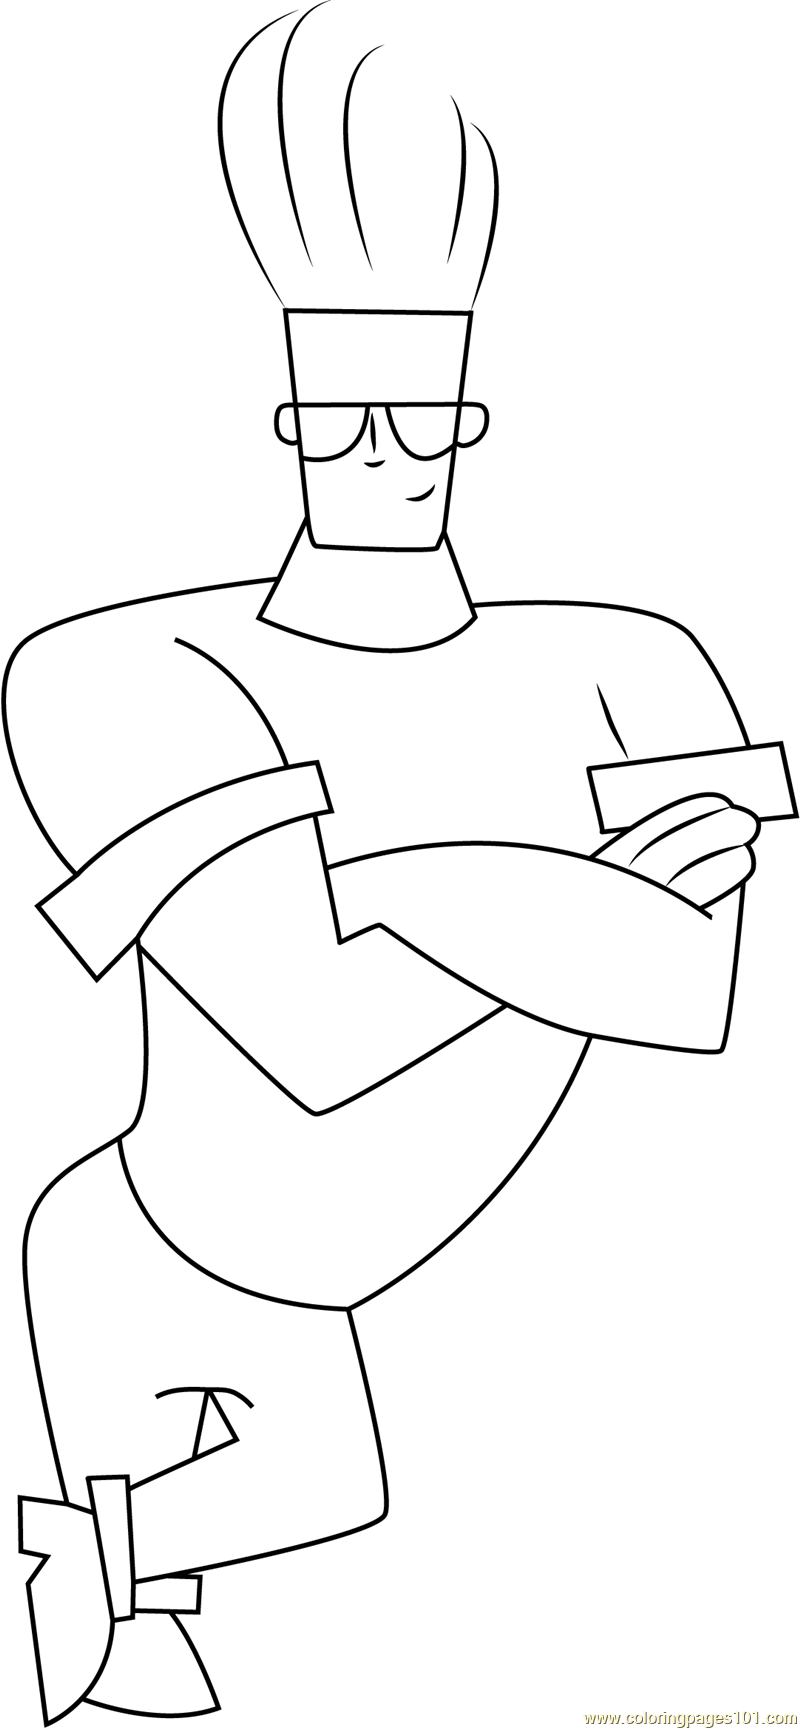 Cute Johnny Bravo Coloring Page Free Johnny Bravo